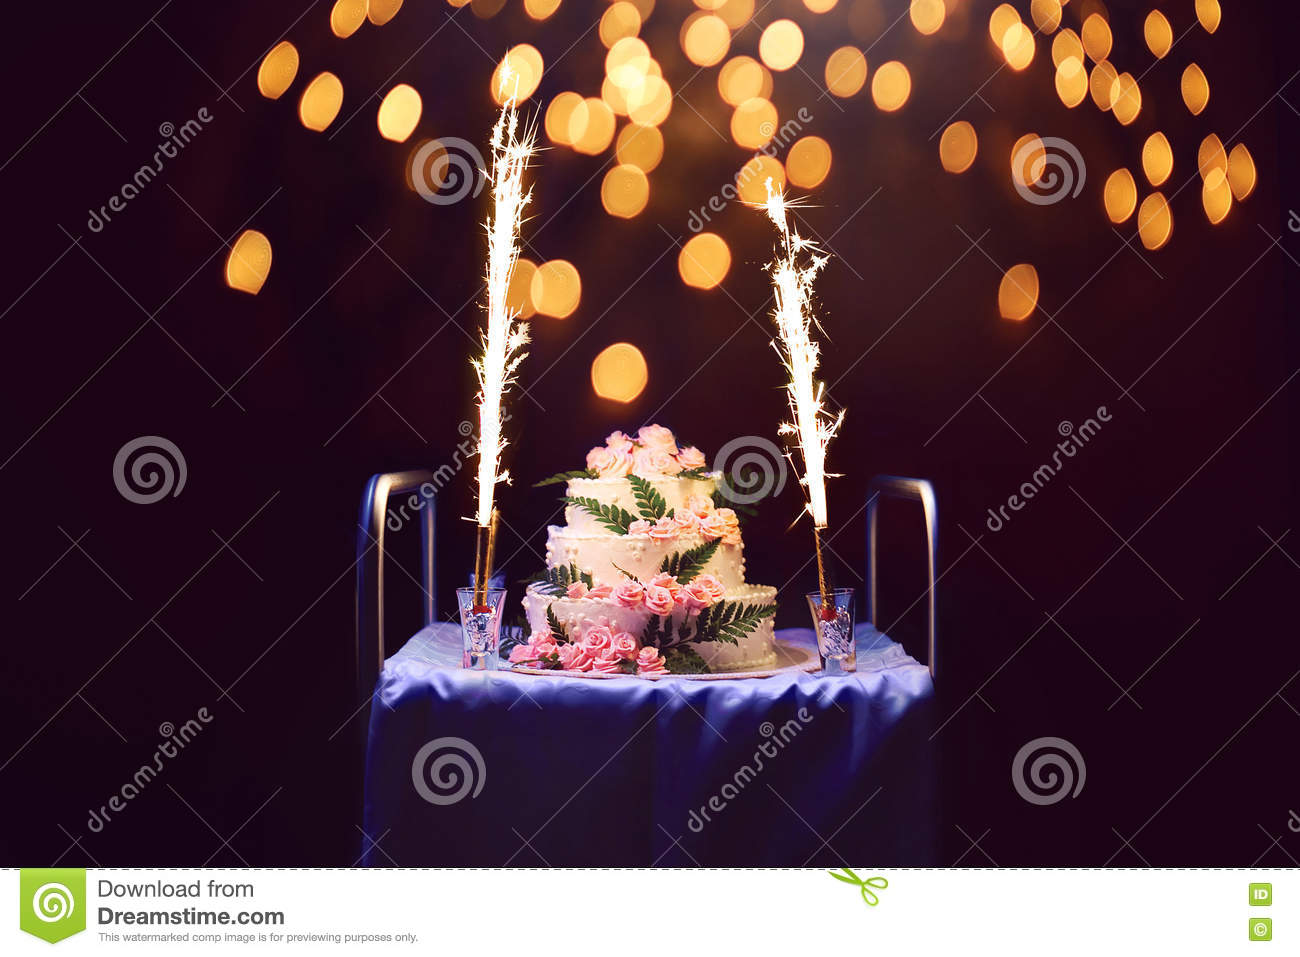 Outstanding Celebration Holiday Birthday Cake With Candles And Fireworks B Funny Birthday Cards Online Alyptdamsfinfo